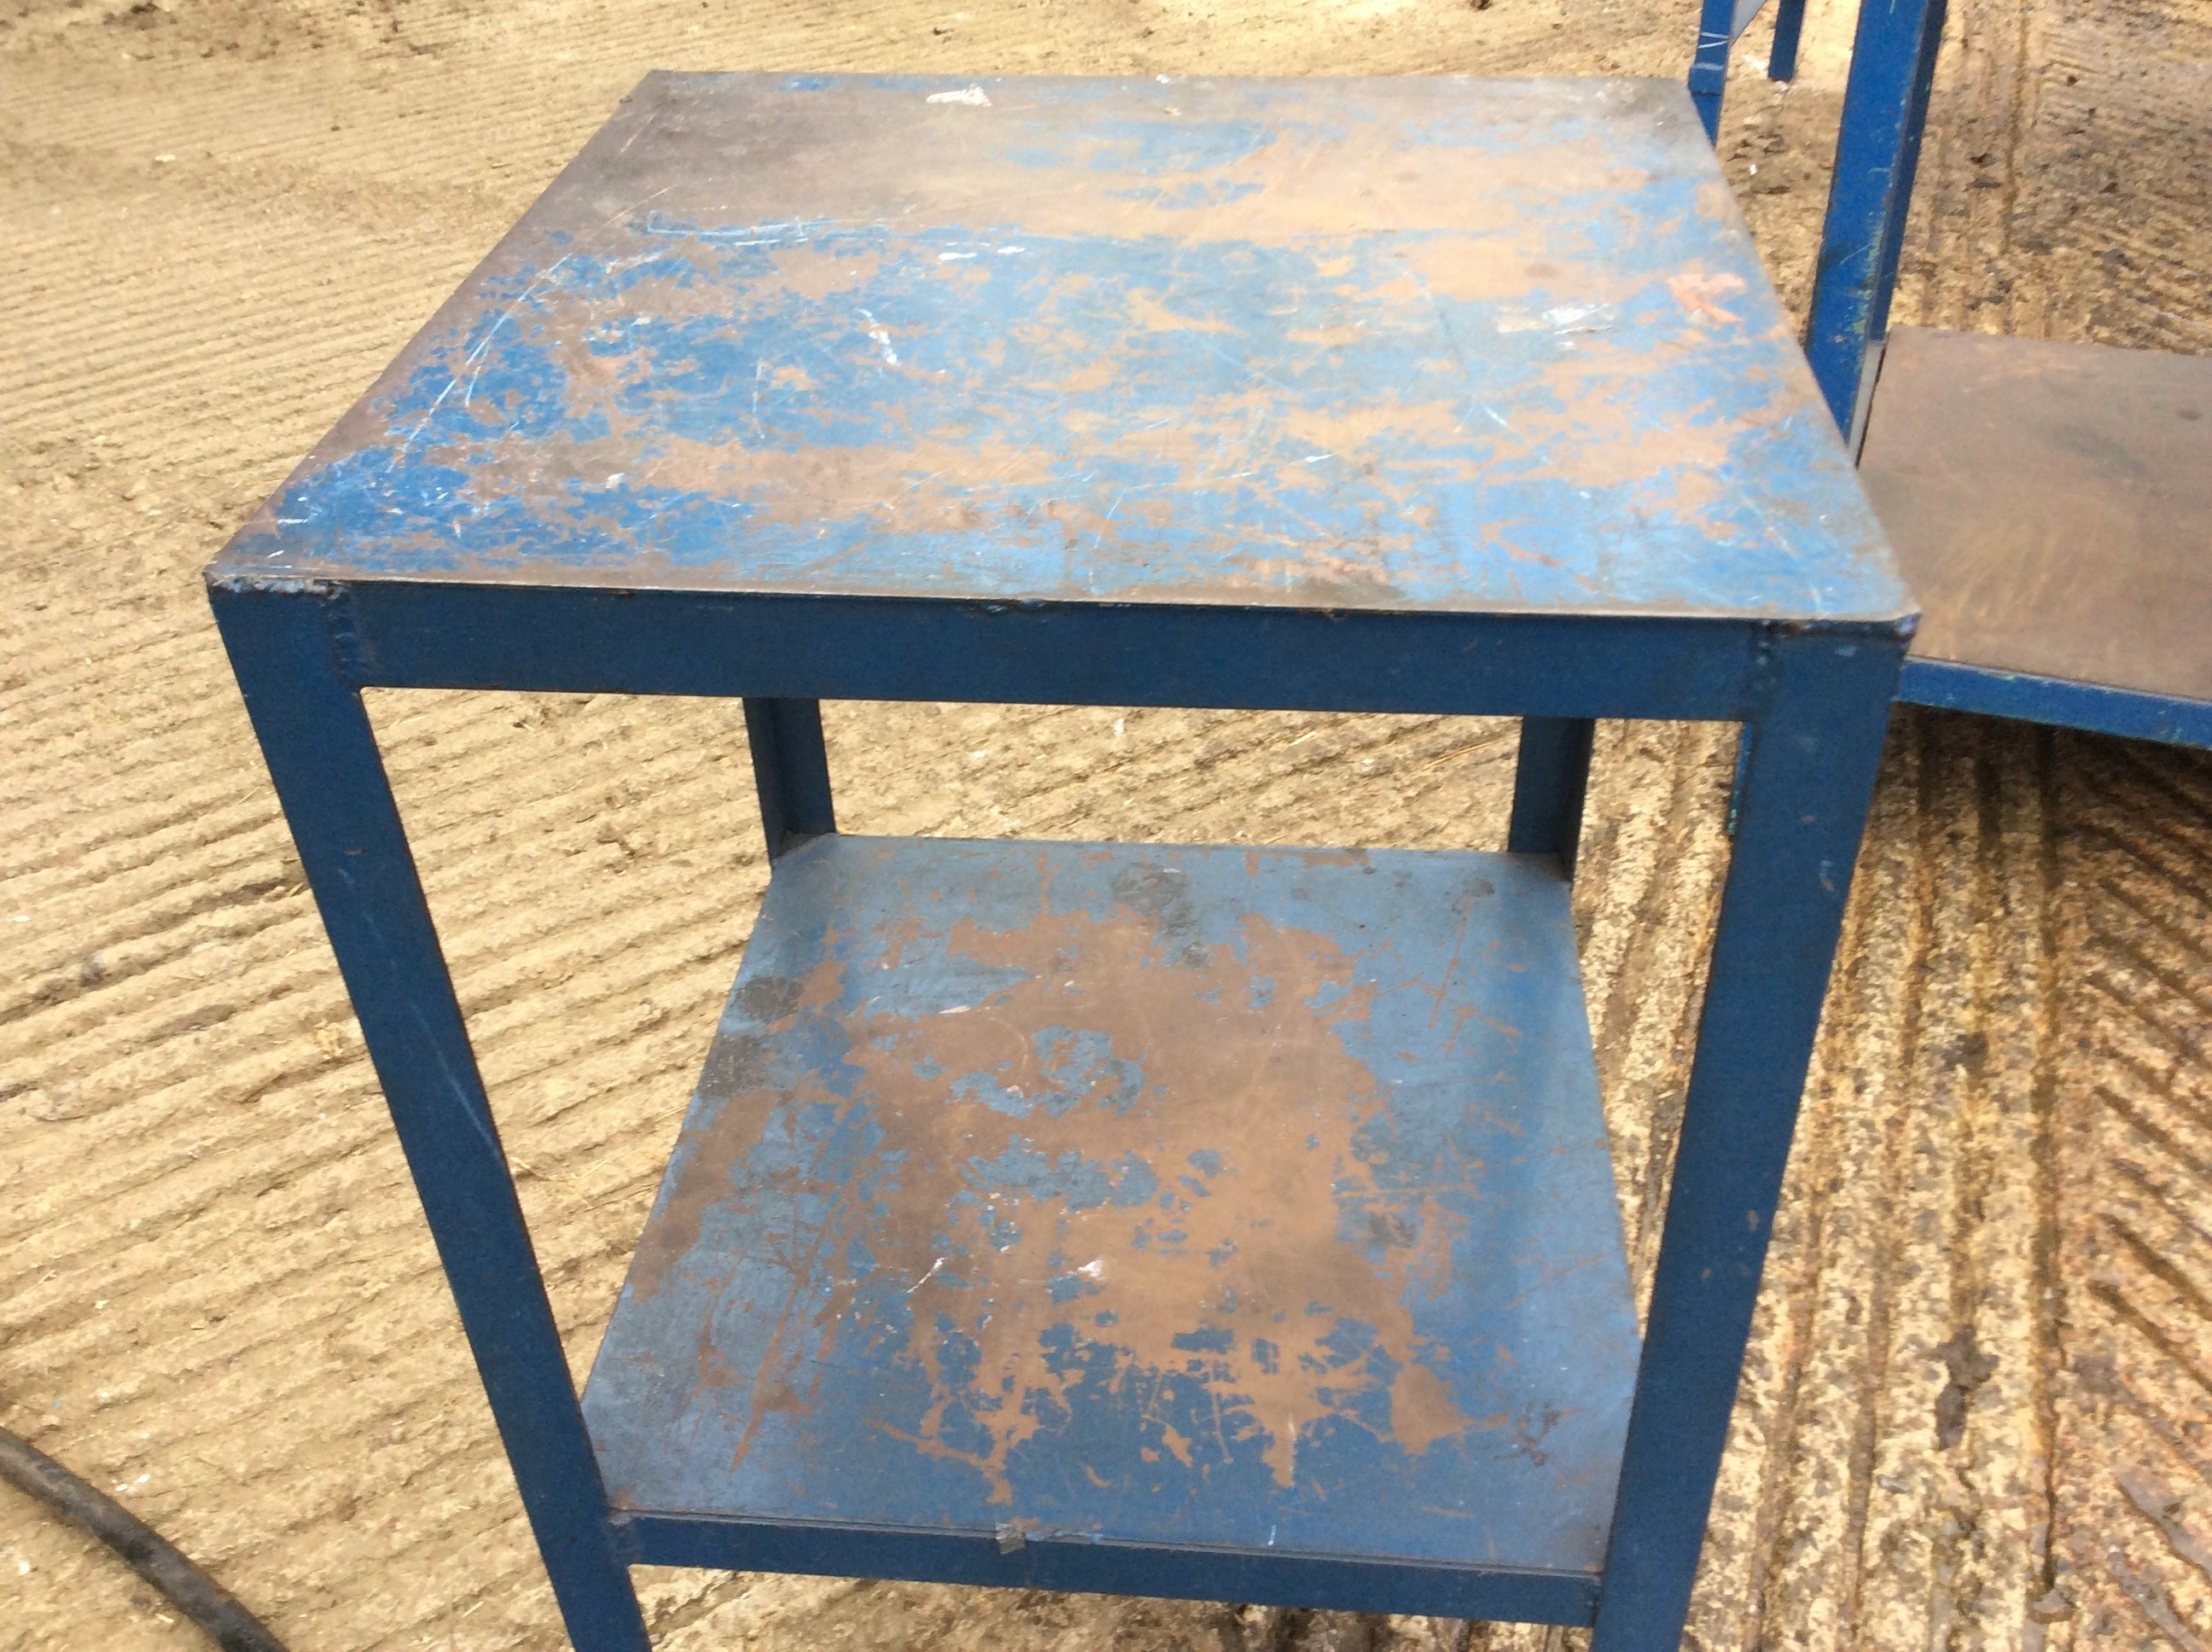 Selection of metal work benches